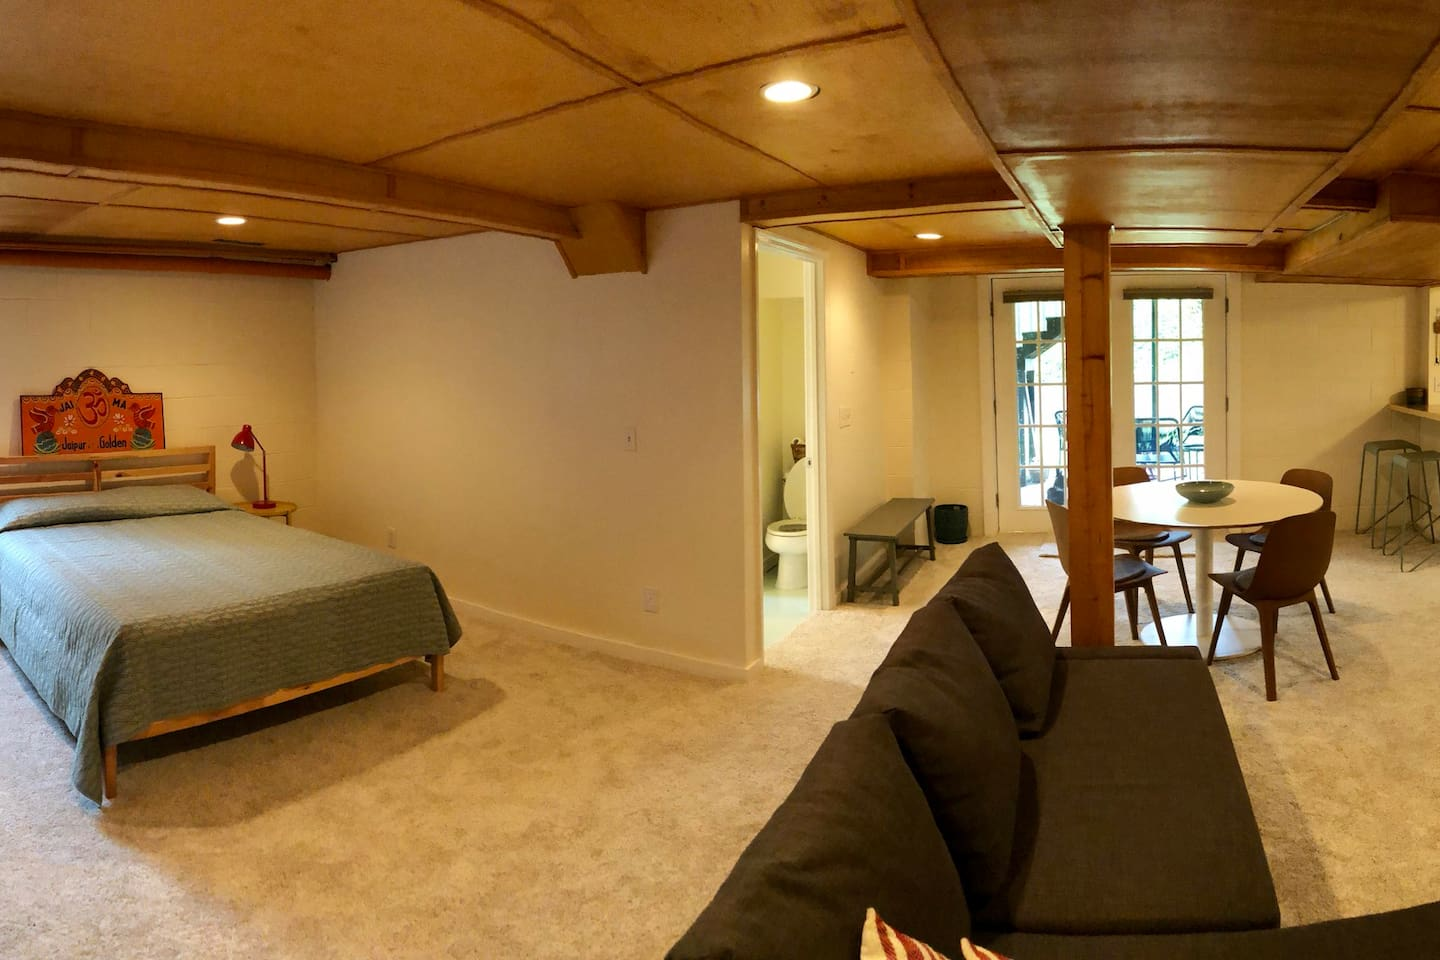 Your Nashville get away. A lovely 700 sq foot basement studio. Great for relaxing between honkytonks.